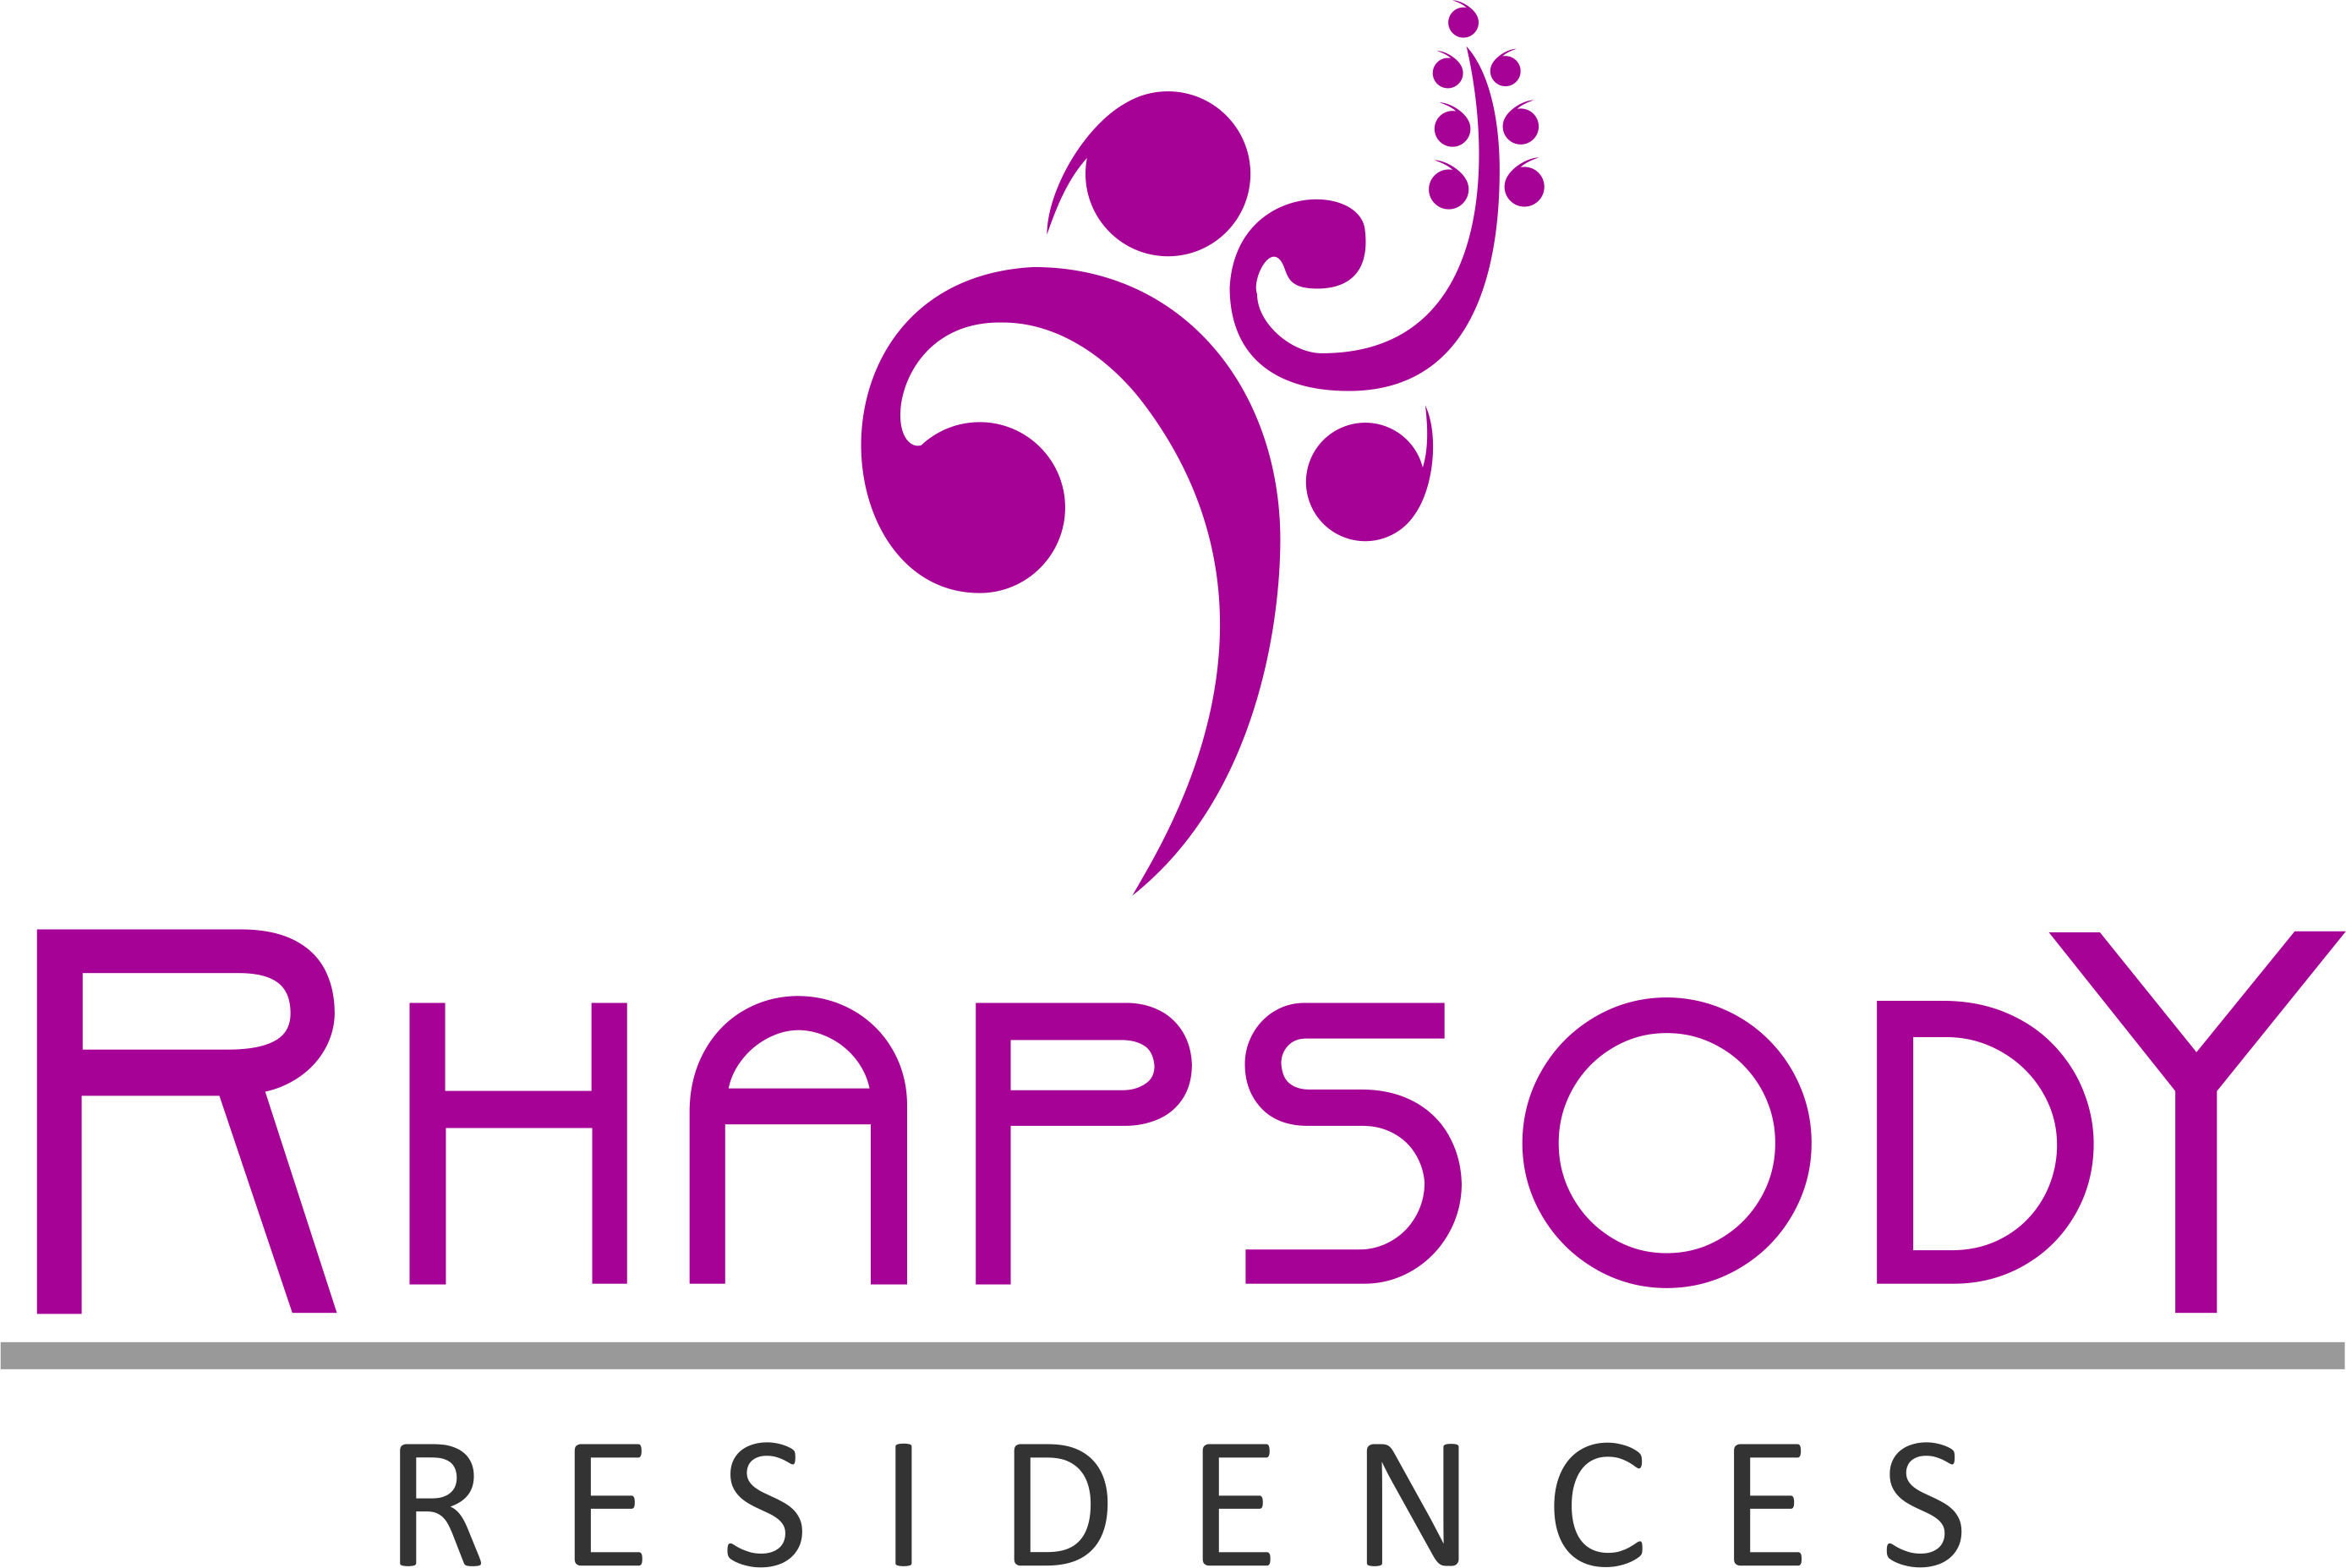 Rhapsody Residences property logo